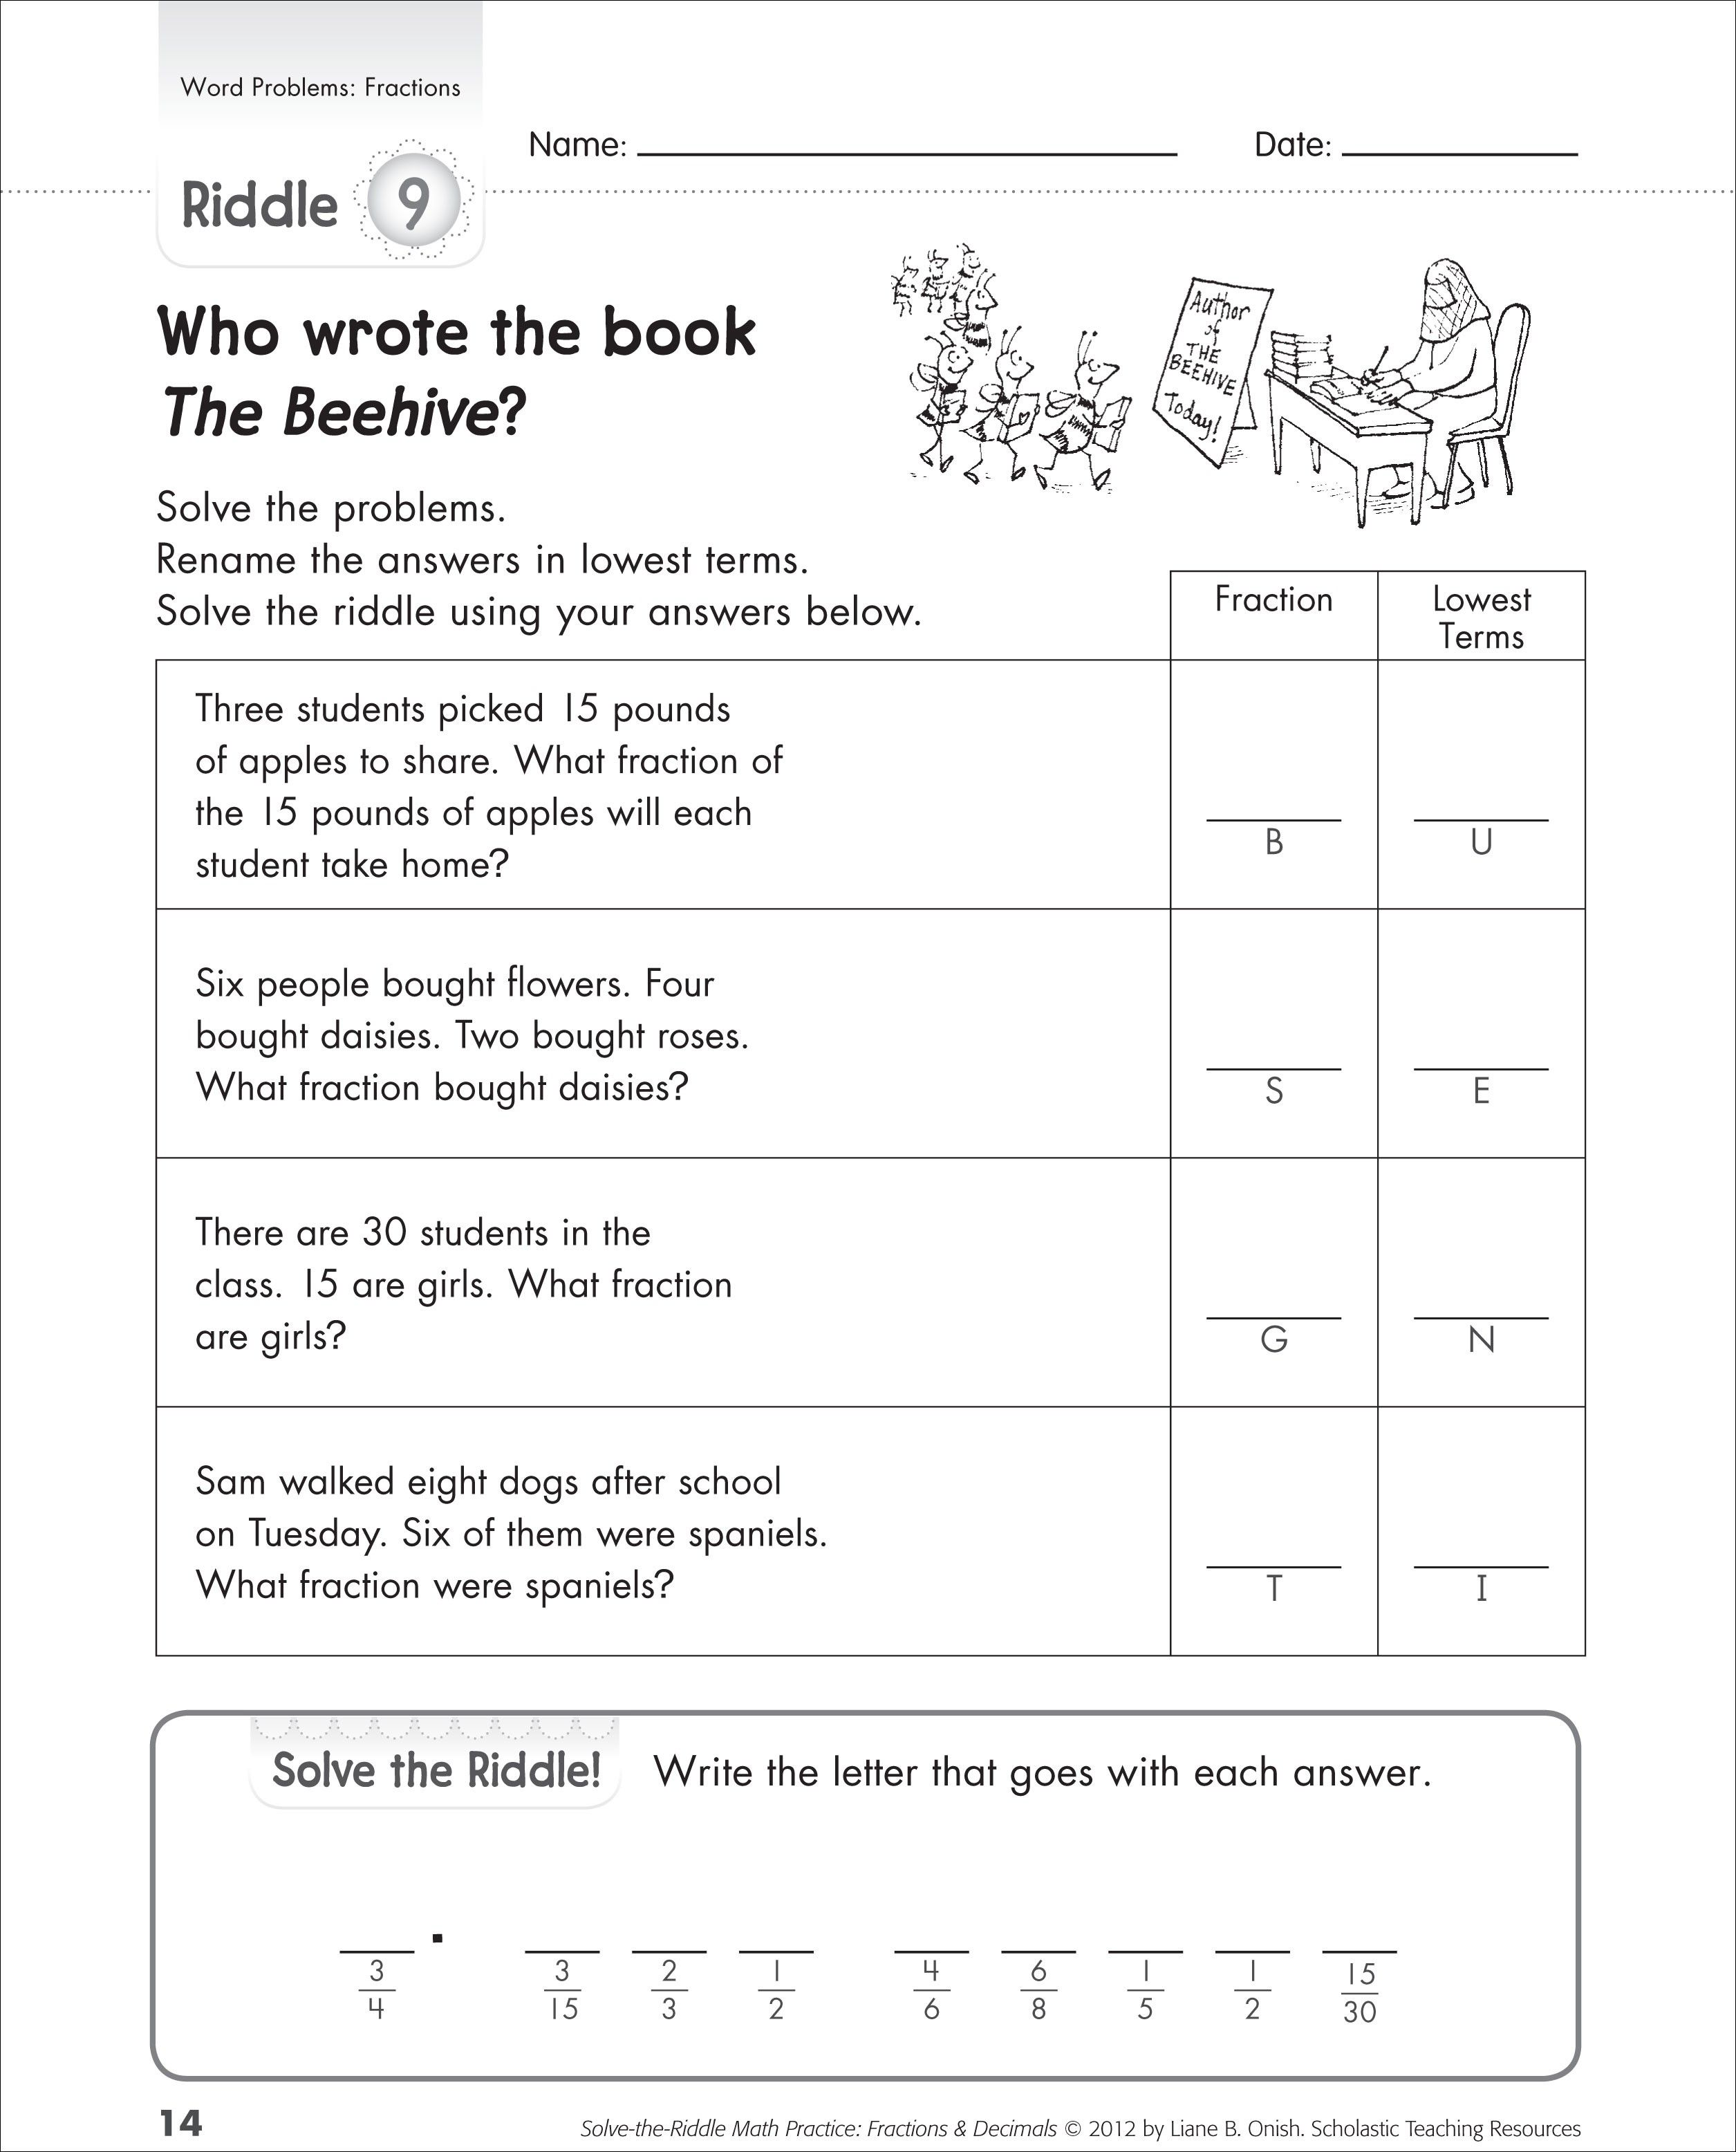 Worksheet Adding And Subtracting Fraction Word Problems help your kids learn fractions with these word problems fraction add subtract multiply divide